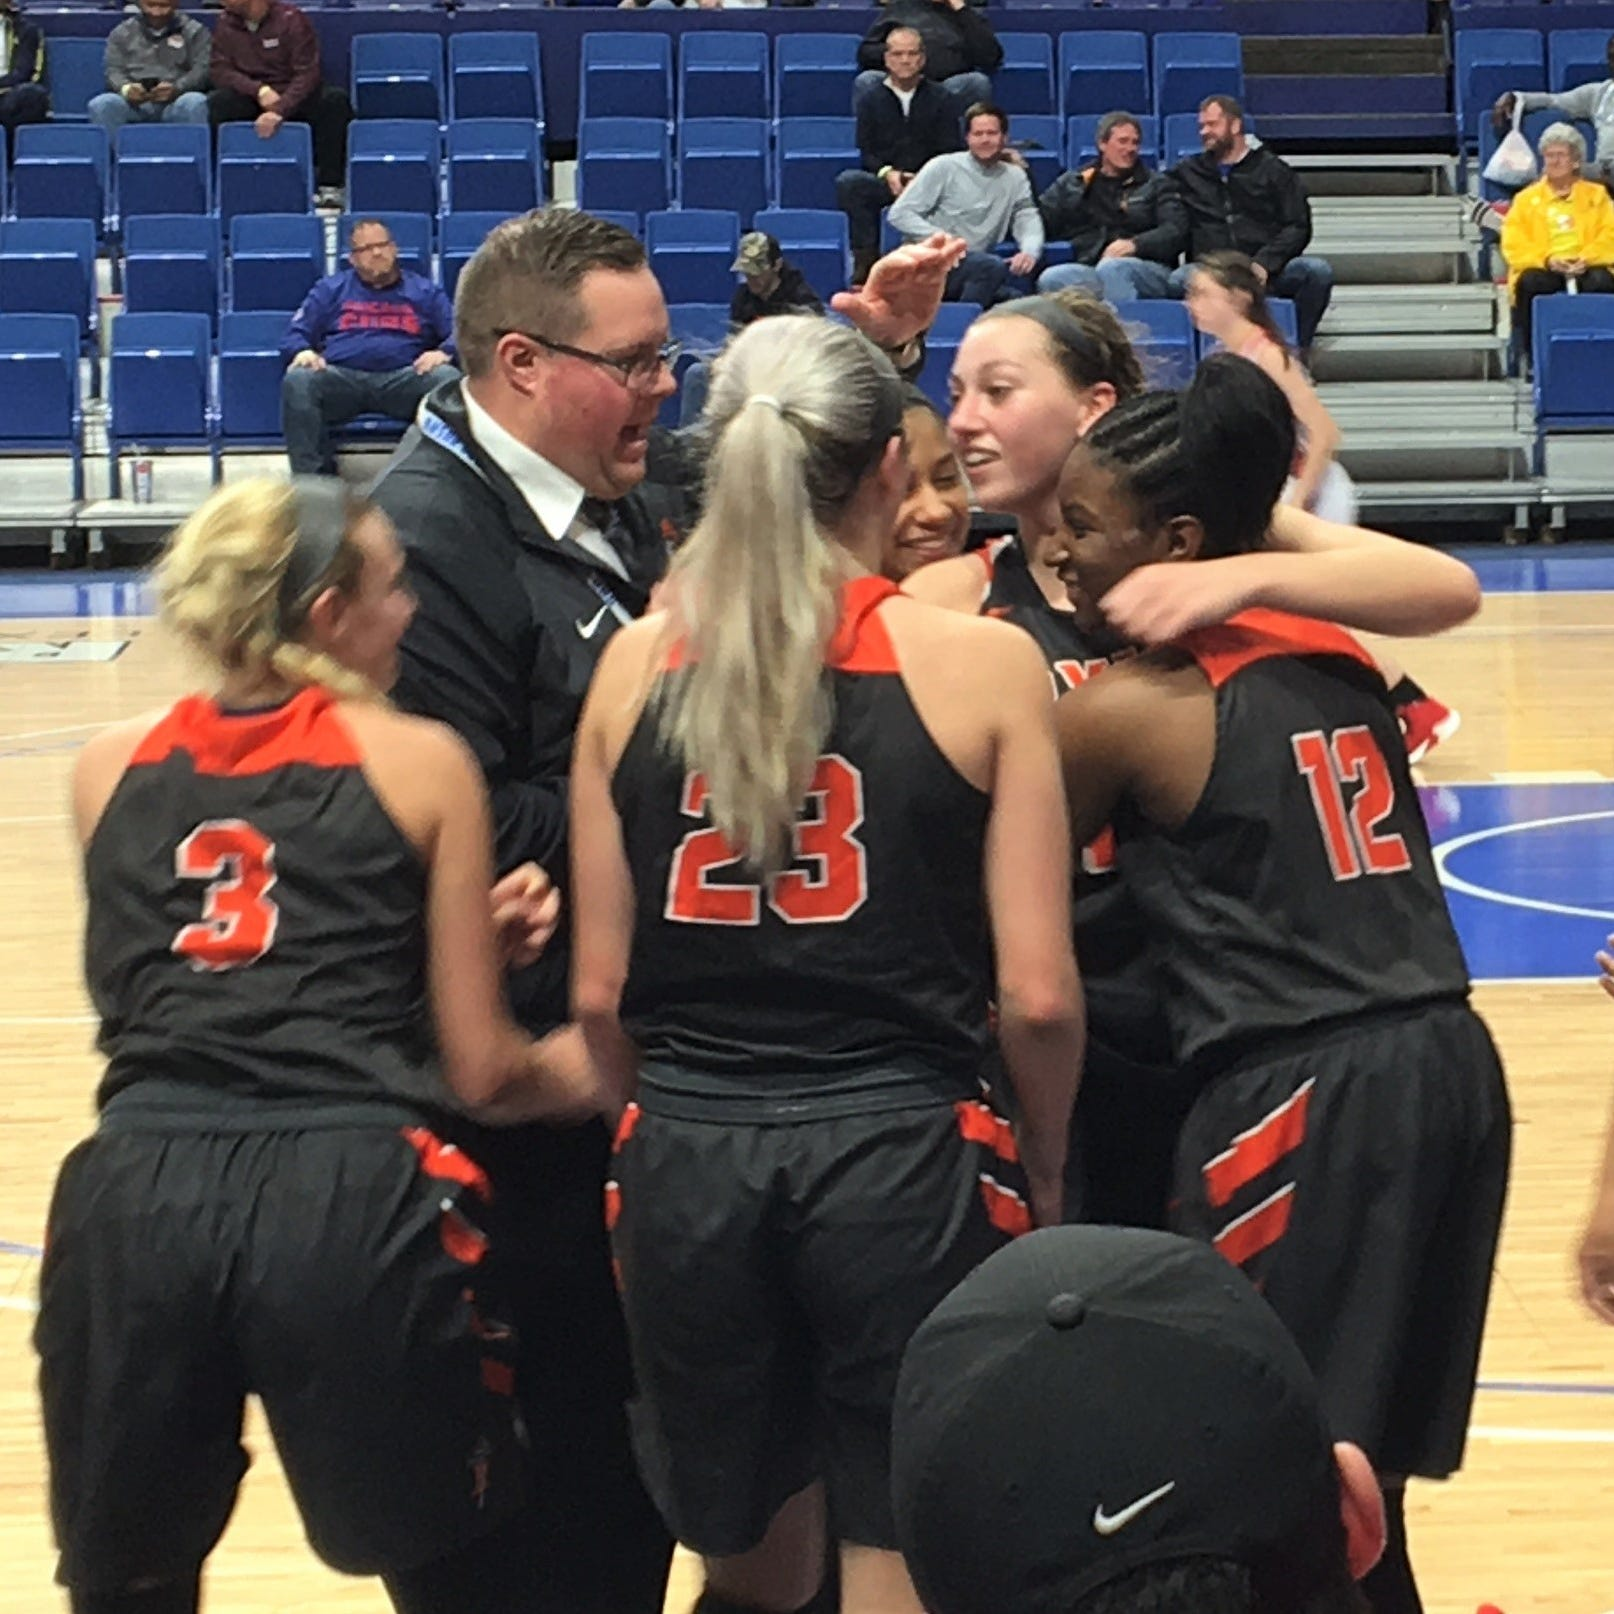 Ryle players celebrate the final seconds of their win in the state quarterfinals